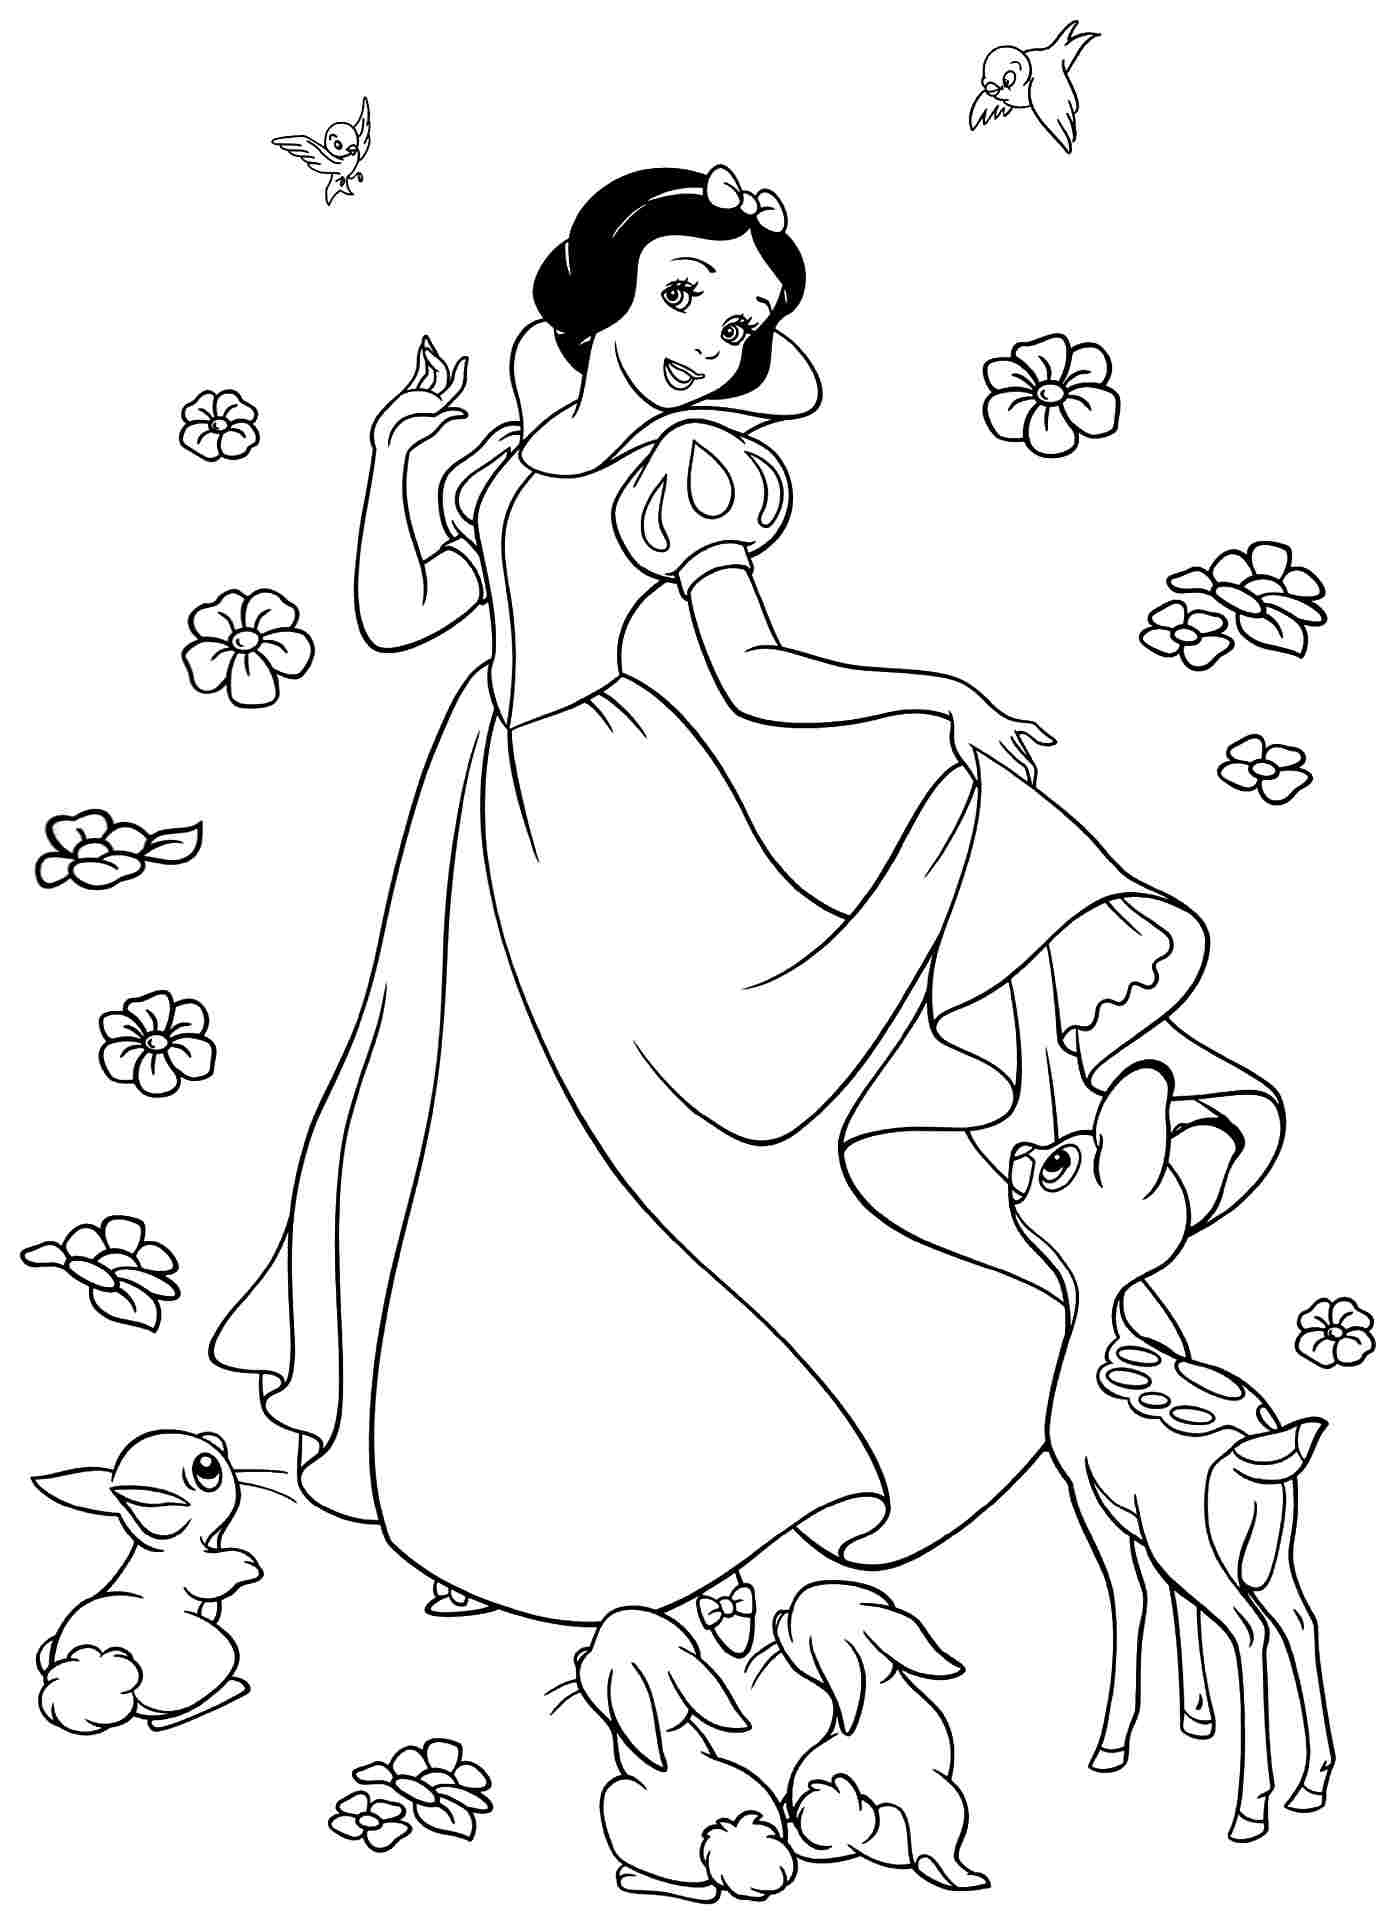 coloring pages of snow whitw - photo#17